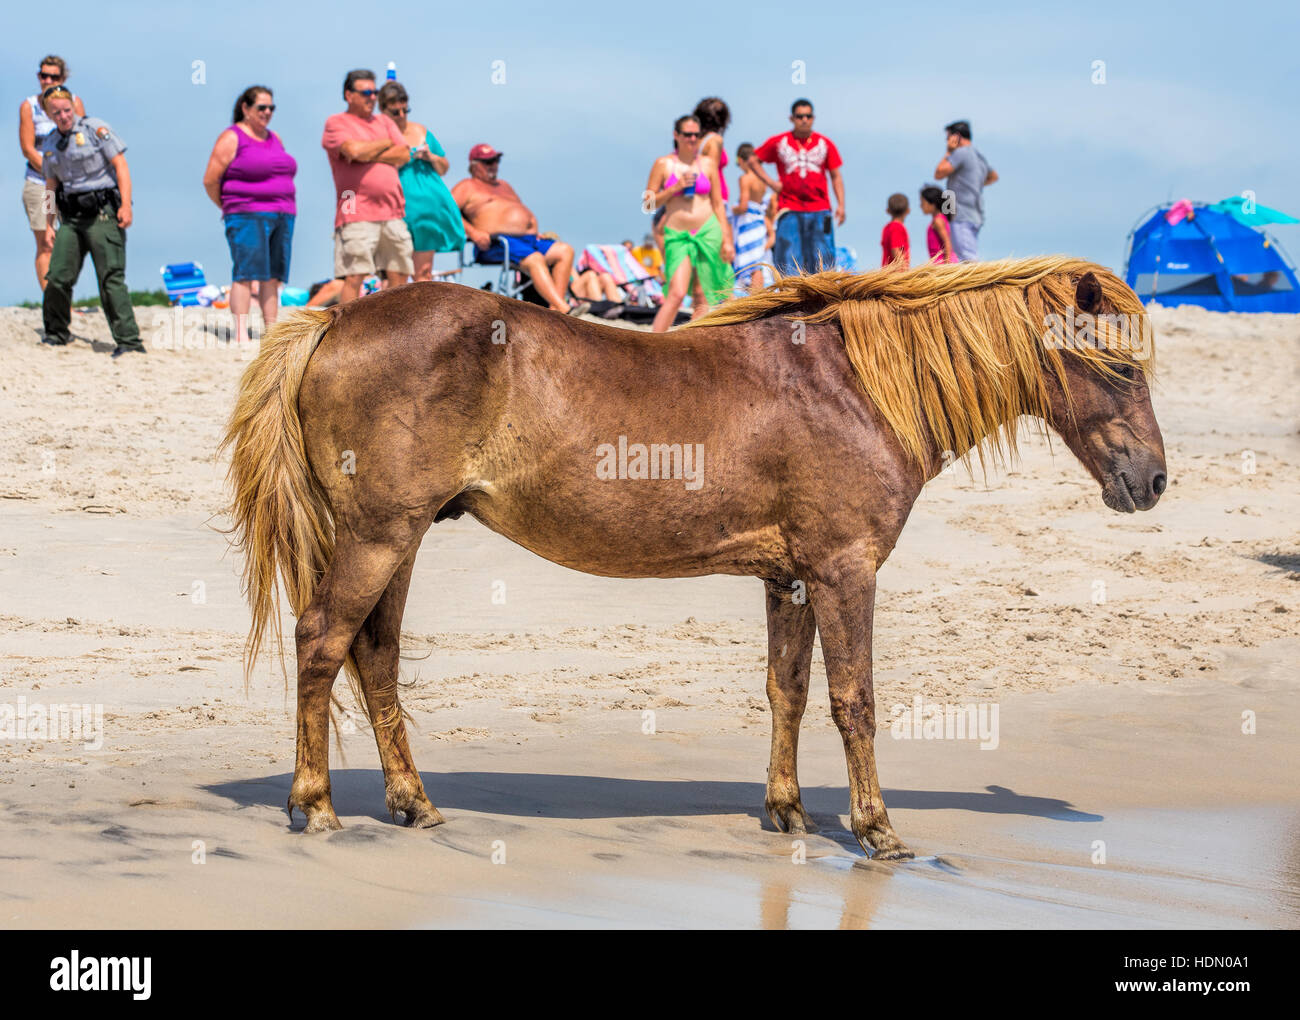 A Wild pony, horse, of Assateague Island, Maryland, USA on the beach. There are people on the beach watching the Stock Photo